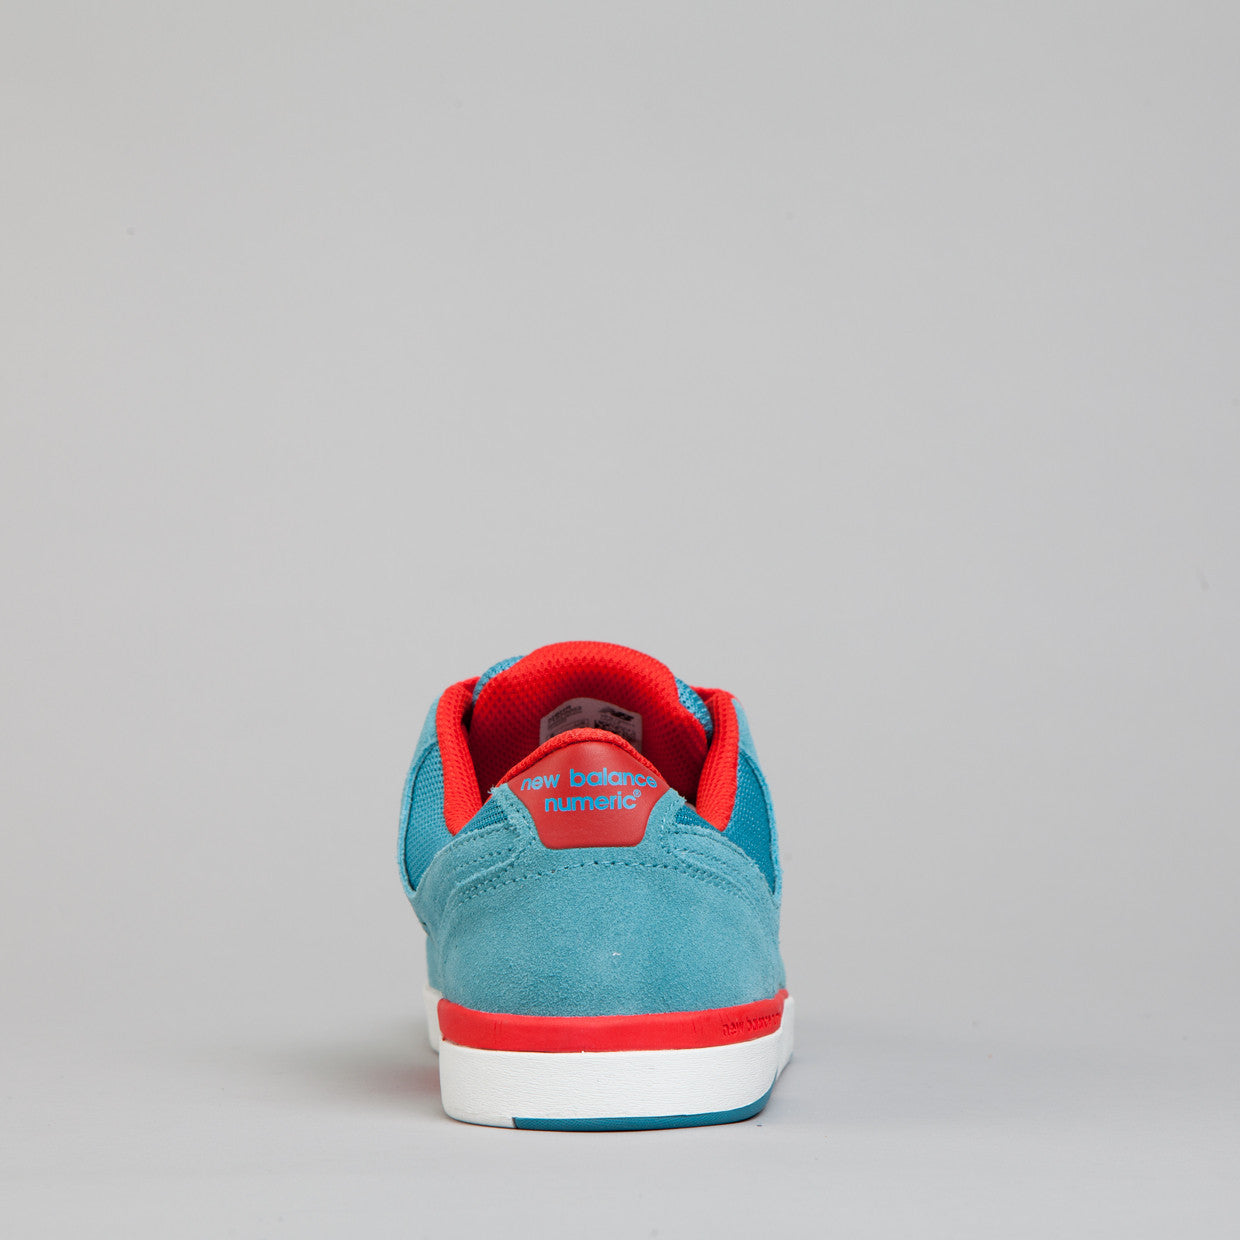 New Balance Numeric Stratford 479 Moon Blue / High Red